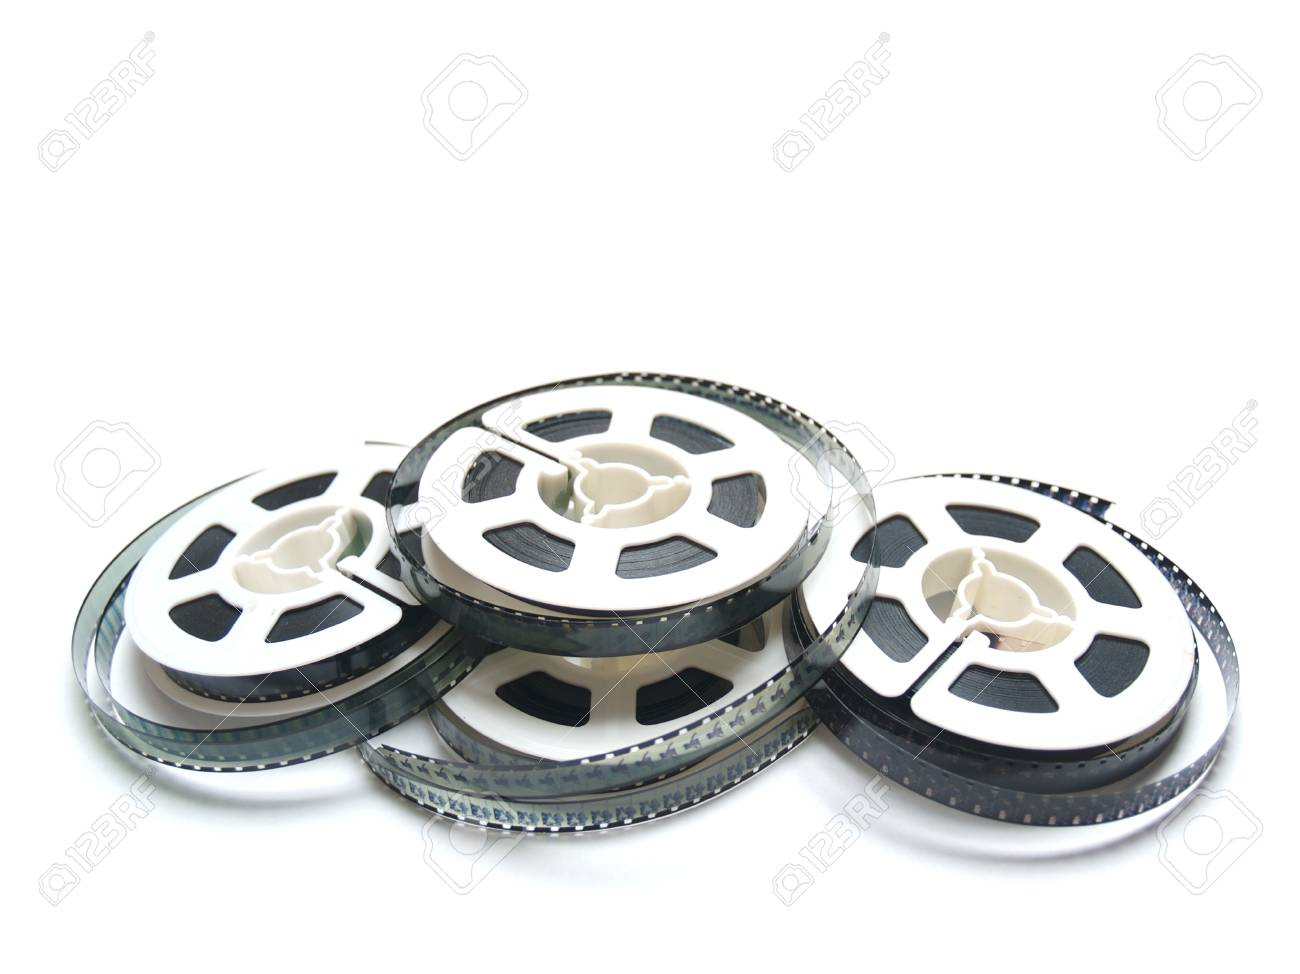 8mm film reels stock photo picture and royalty free image image 8mm film reels stock photo 94516297 thecheapjerseys Choice Image